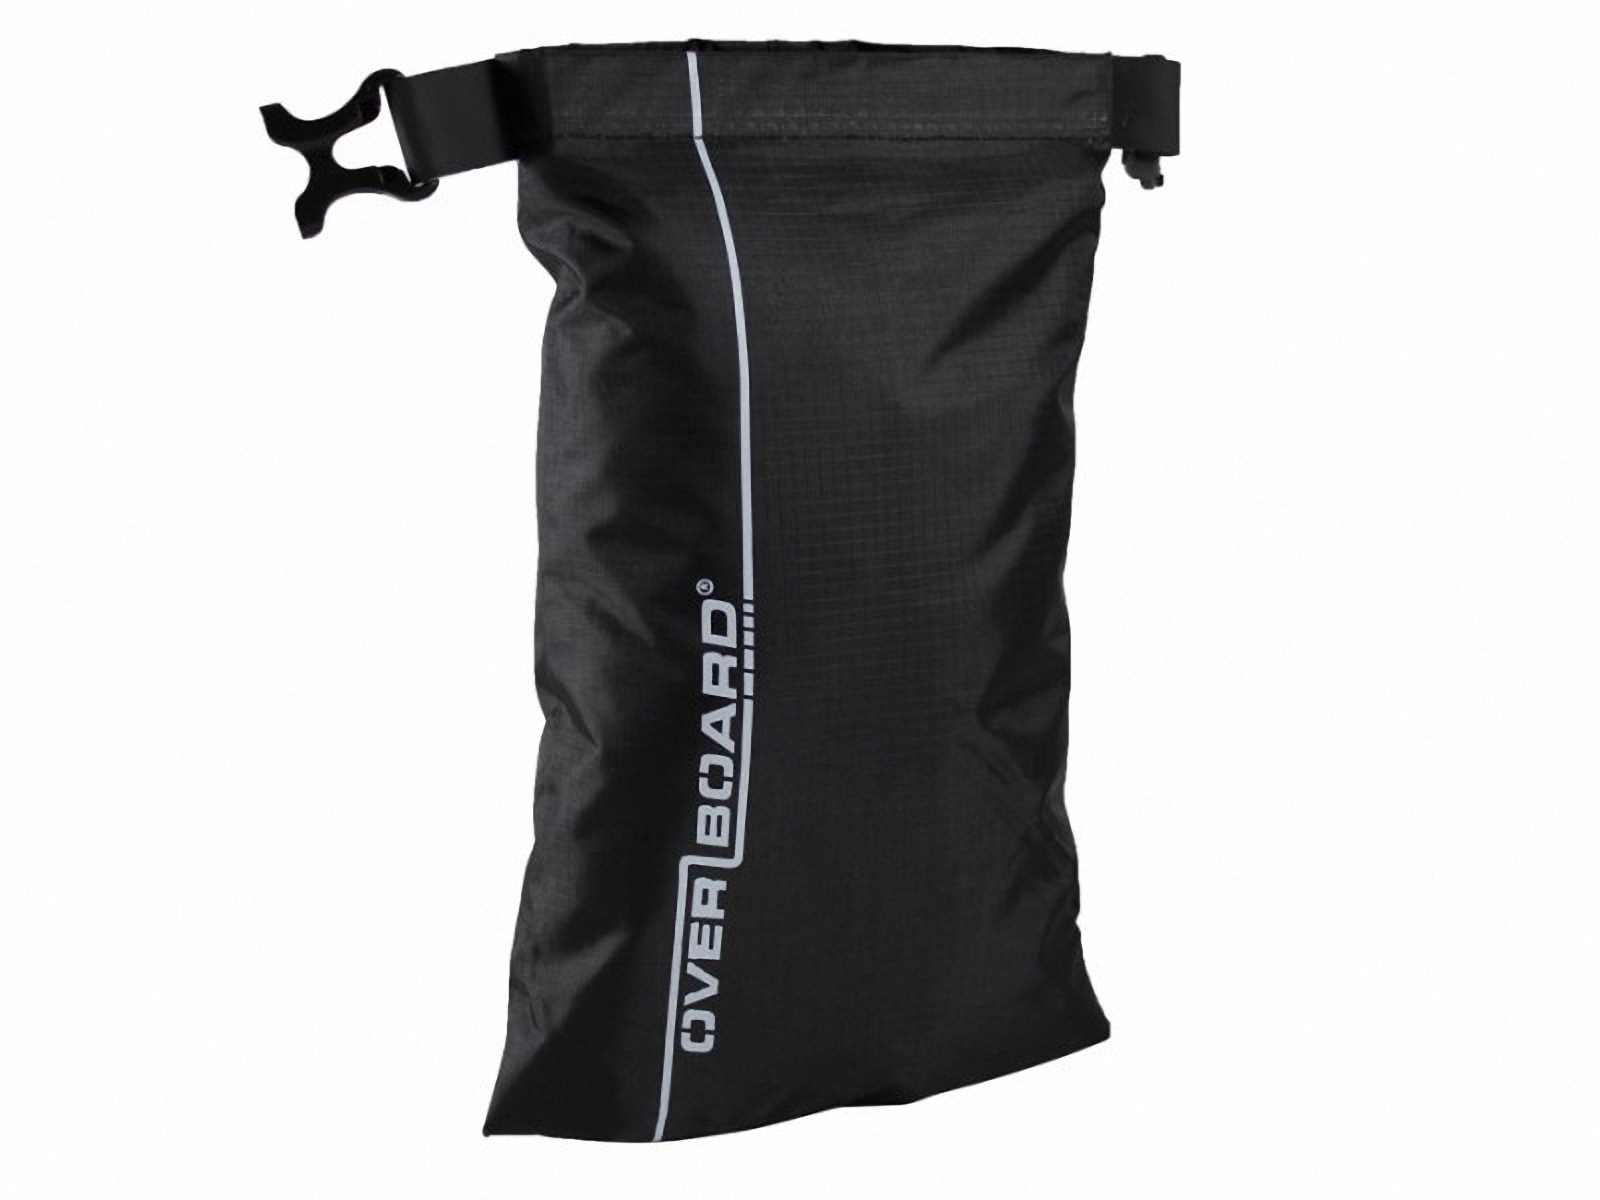 Водонепроницаемый гермомешок OverBoard OB1031BLK - Waterproof Dry Pouch - 1L (Black) Фото 2